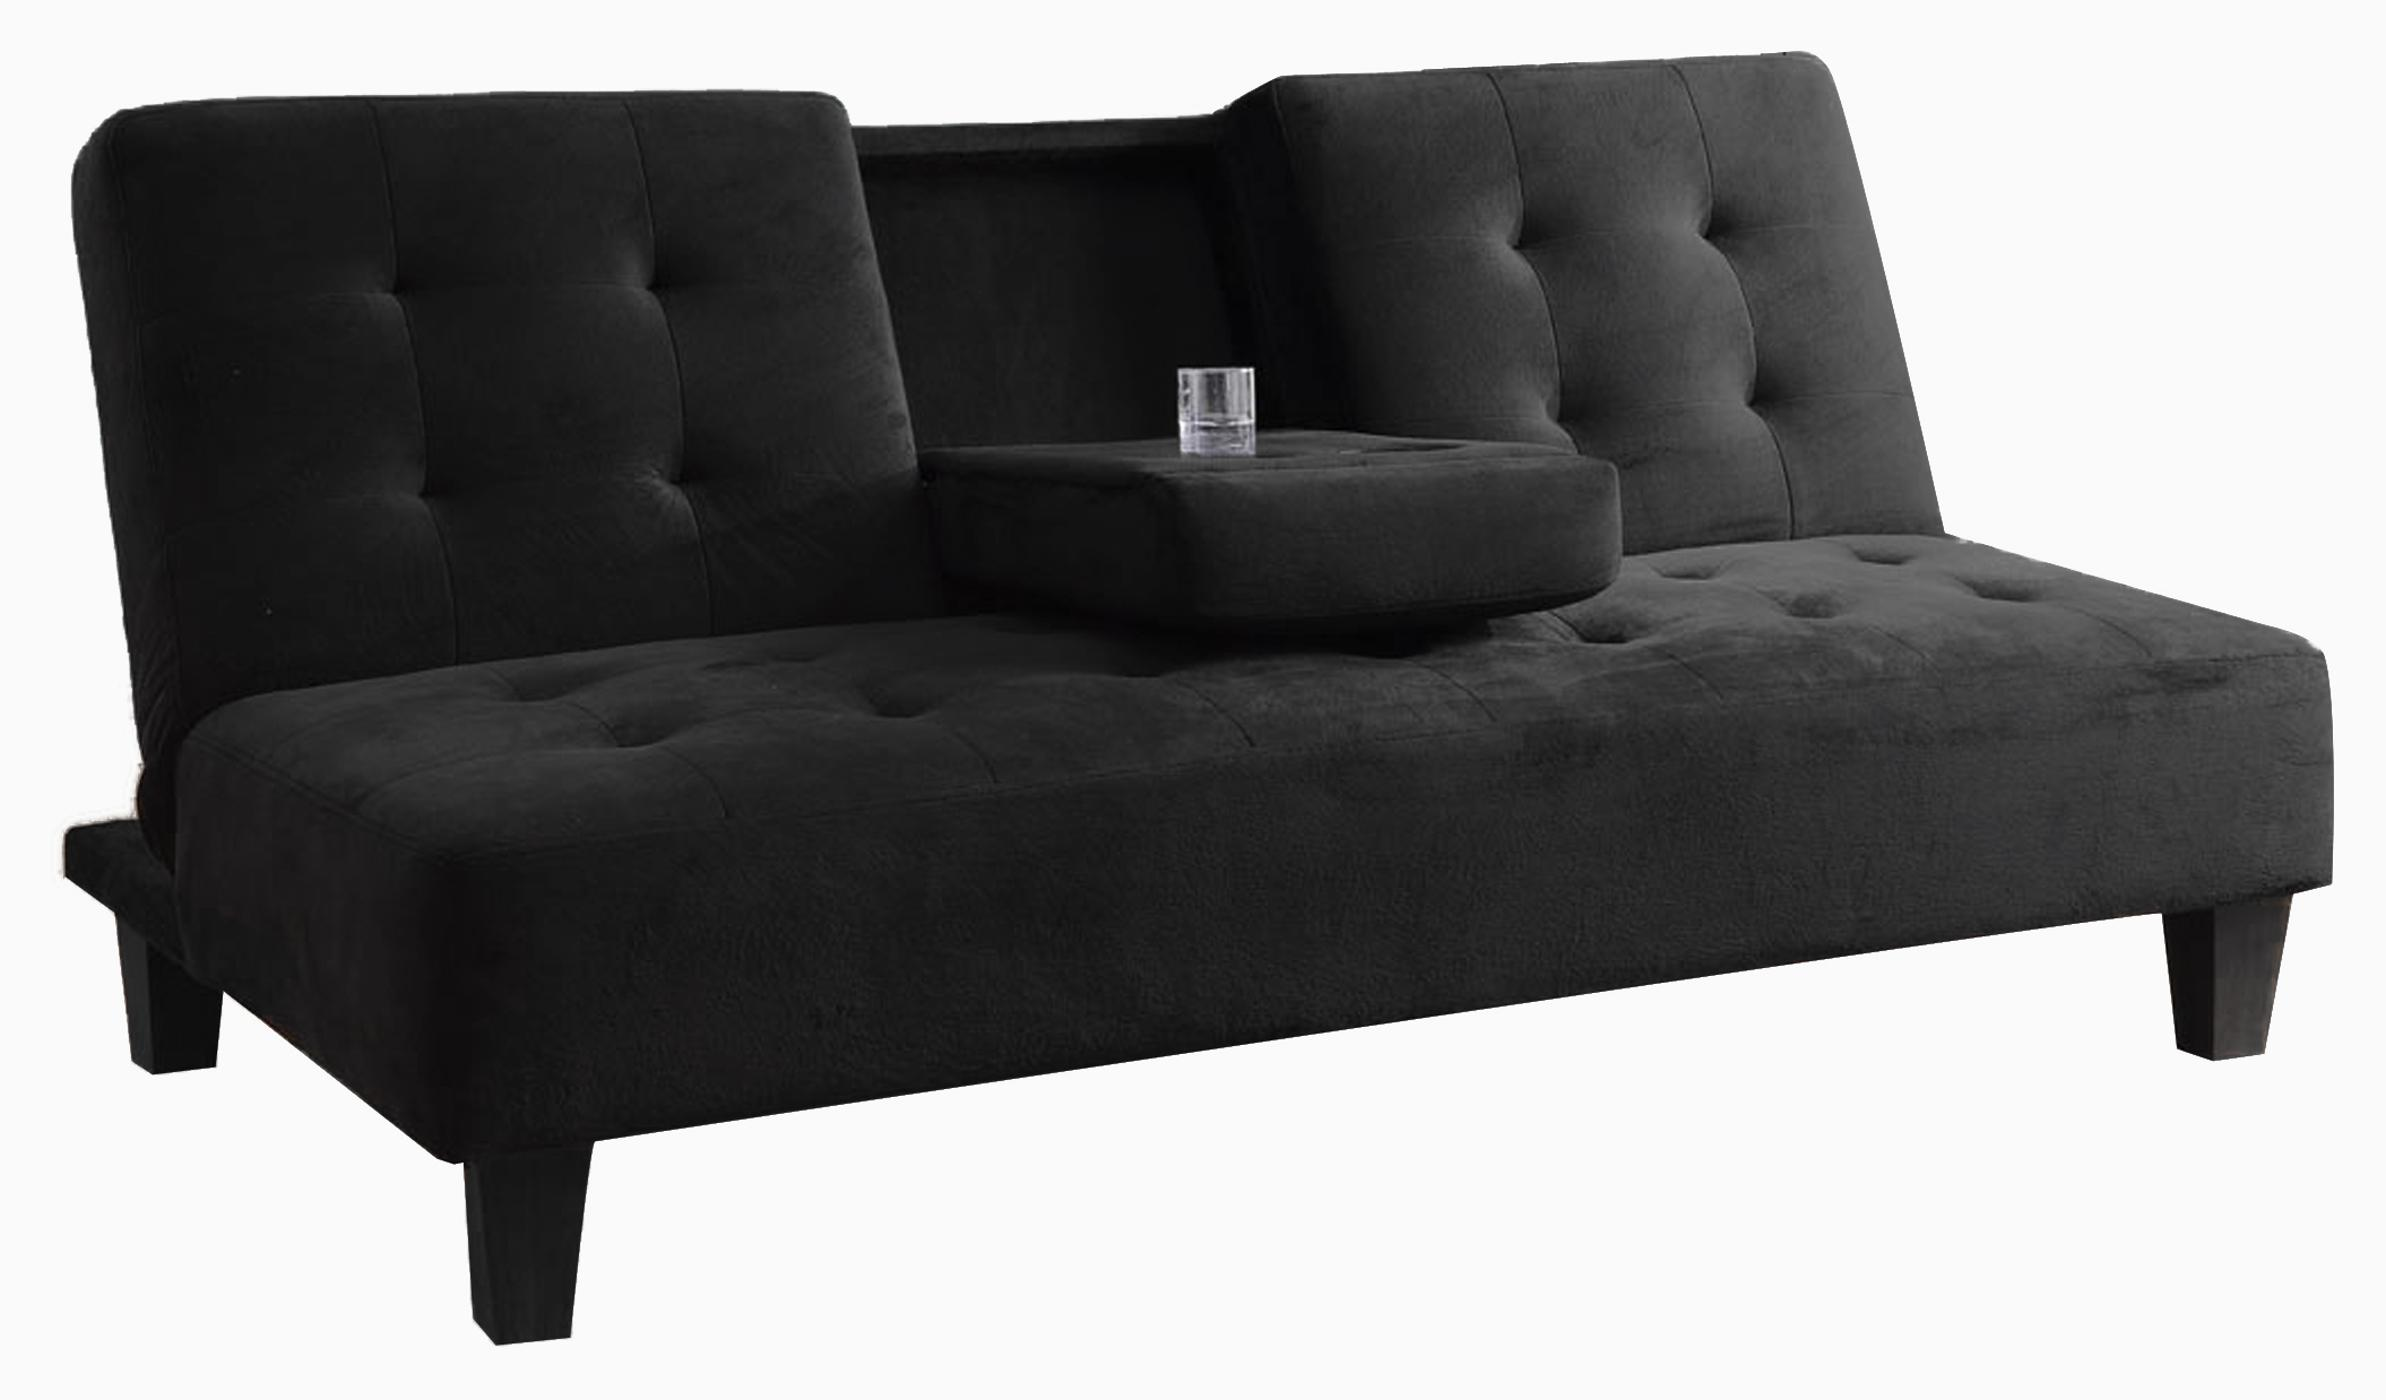 Madrid Futon Sofa Bed With Cup Holder In Black